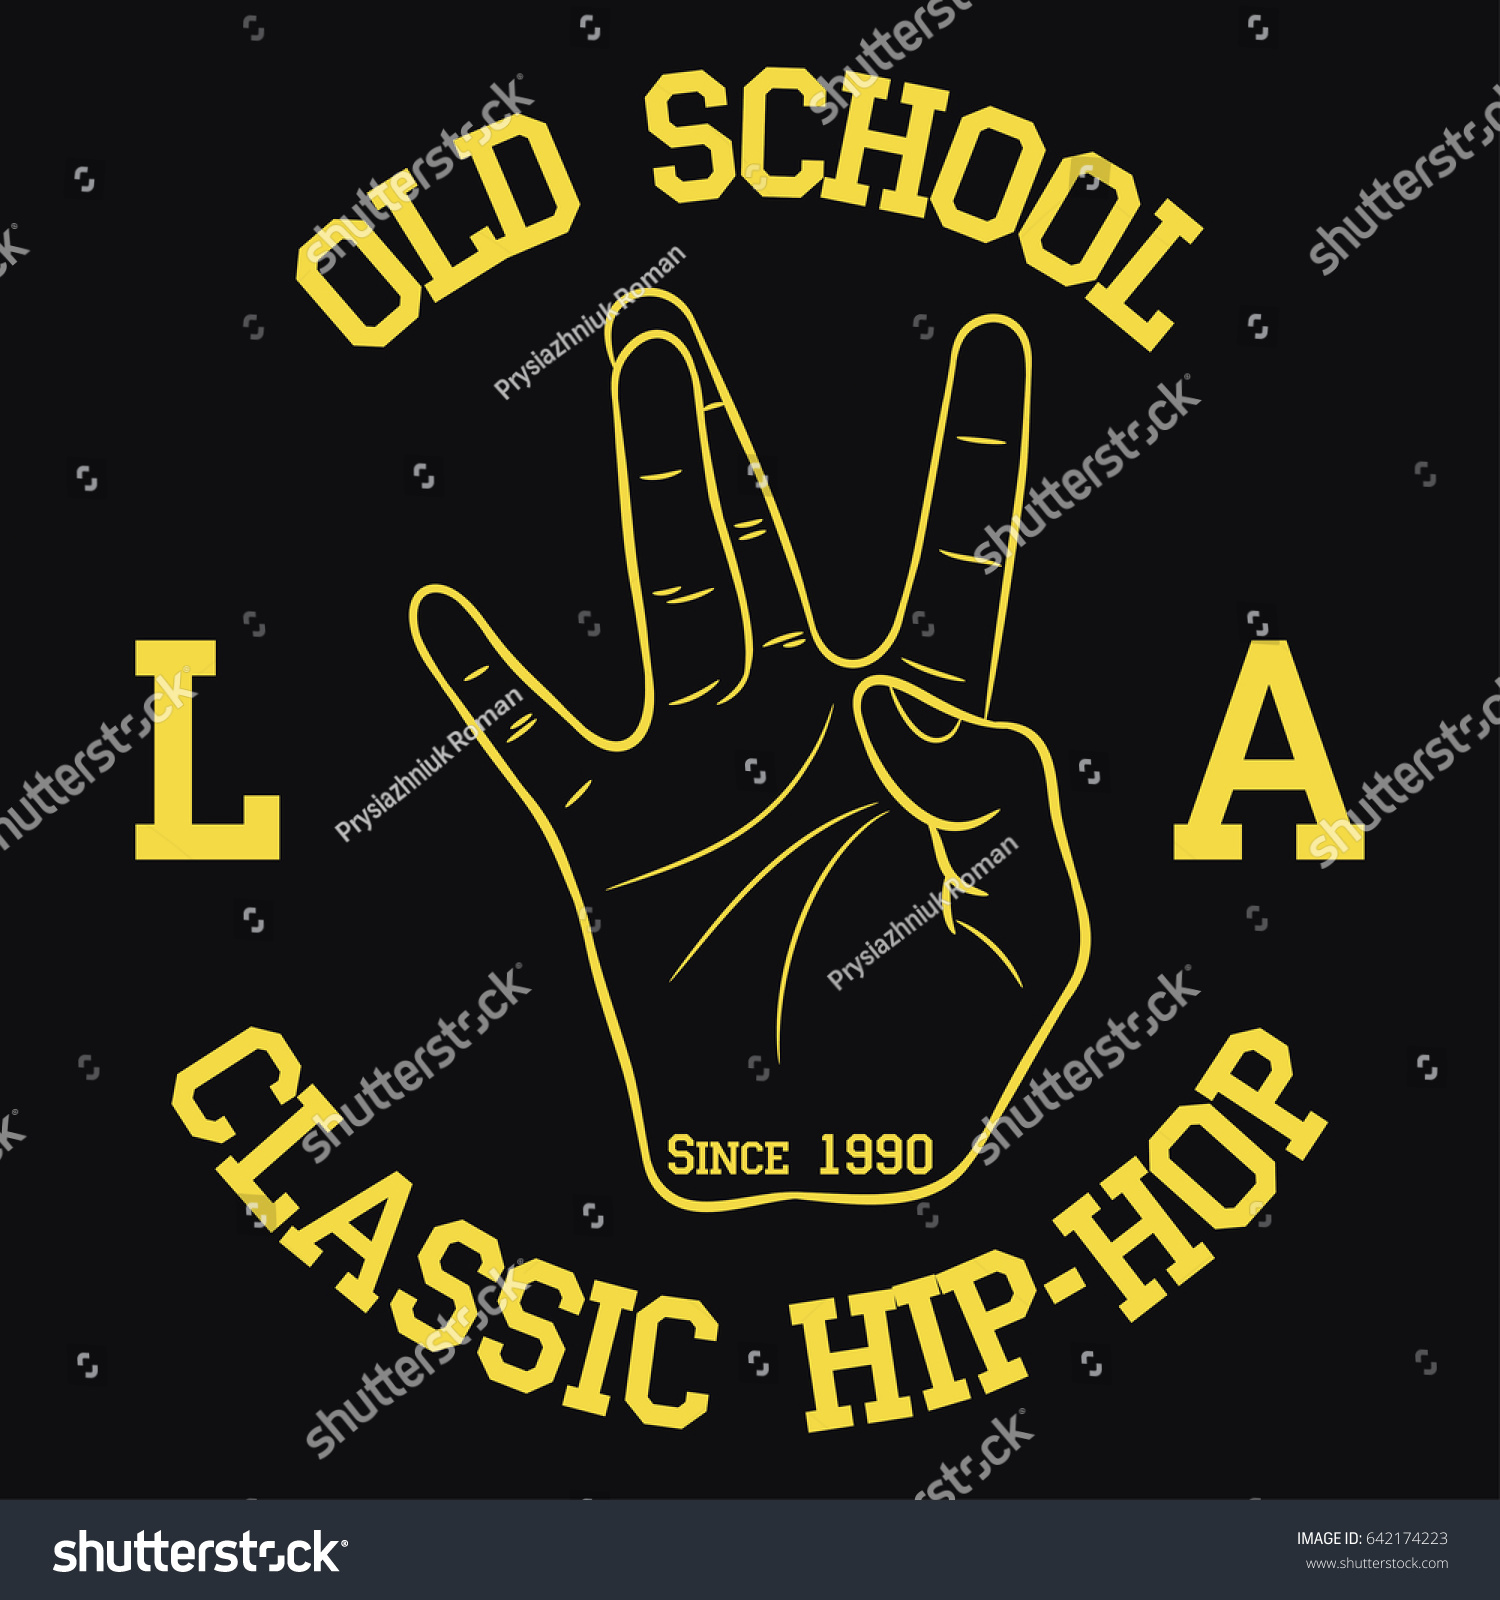 Design t shirts los angeles - Los Angeles Hip Hop Typography For Design Clothes T Shirts Print With